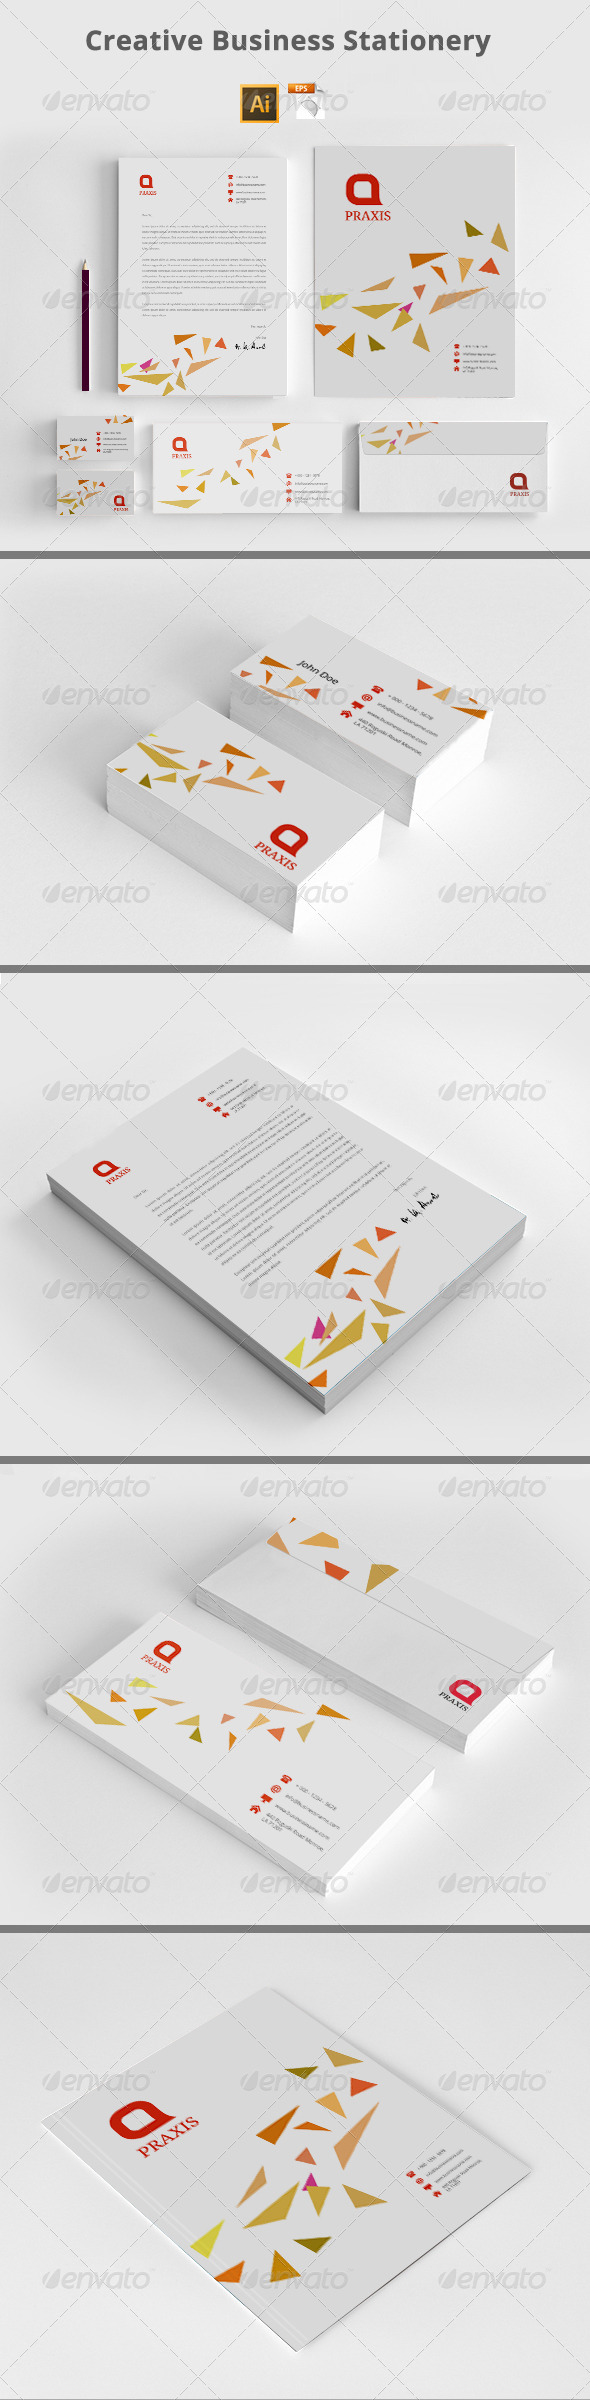 GraphicRiver Creative Business Stationery 8145228